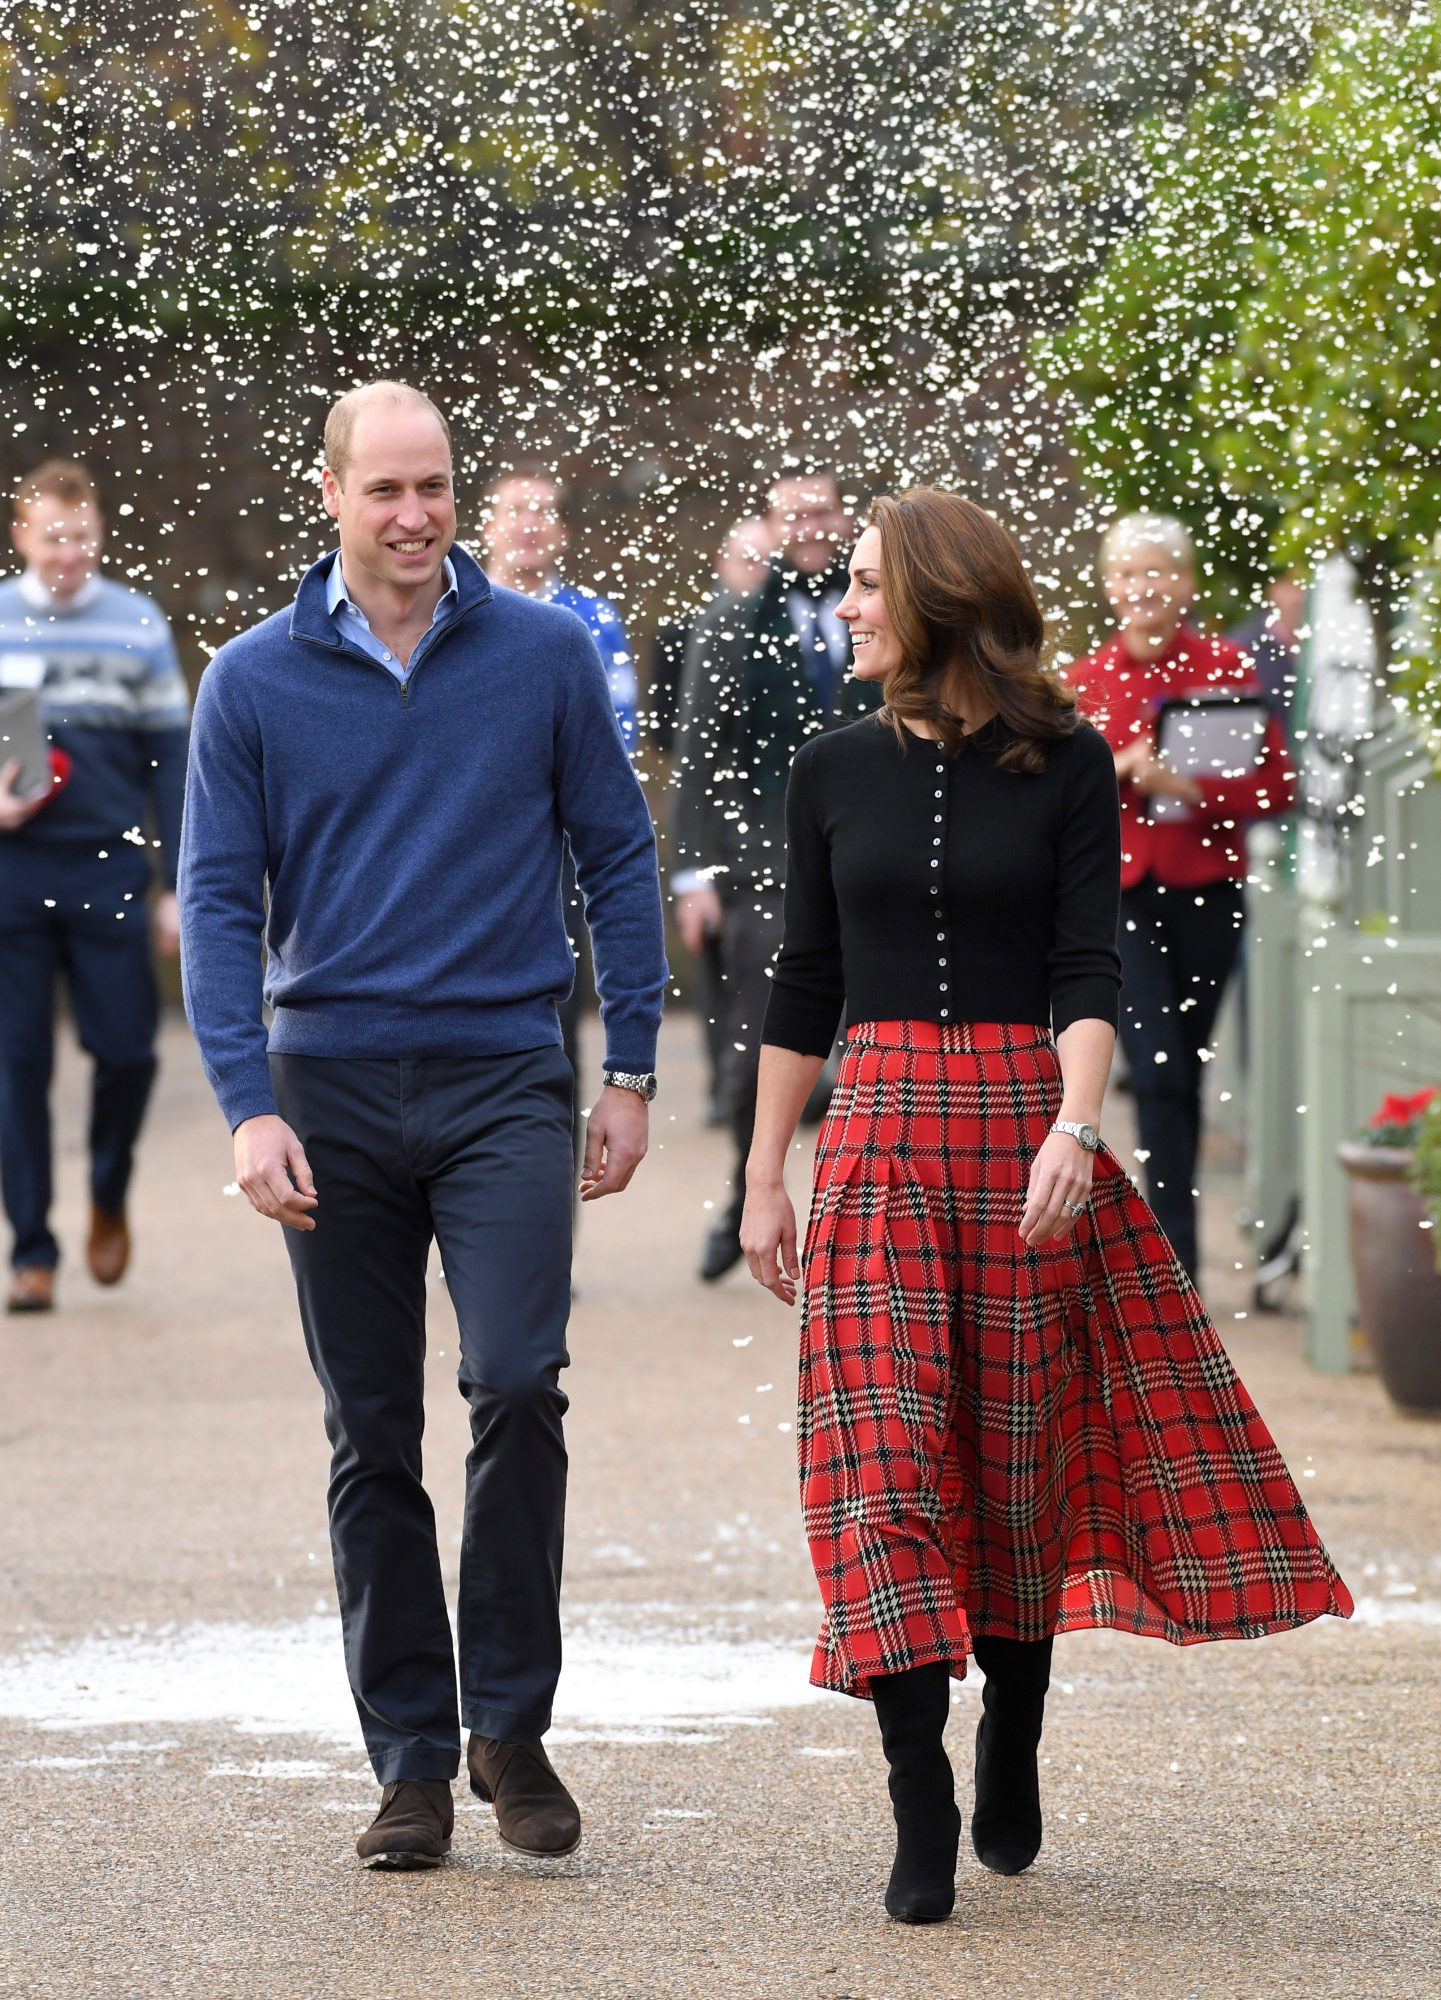 Kate's Emilia Wickstead Tartan Skirt